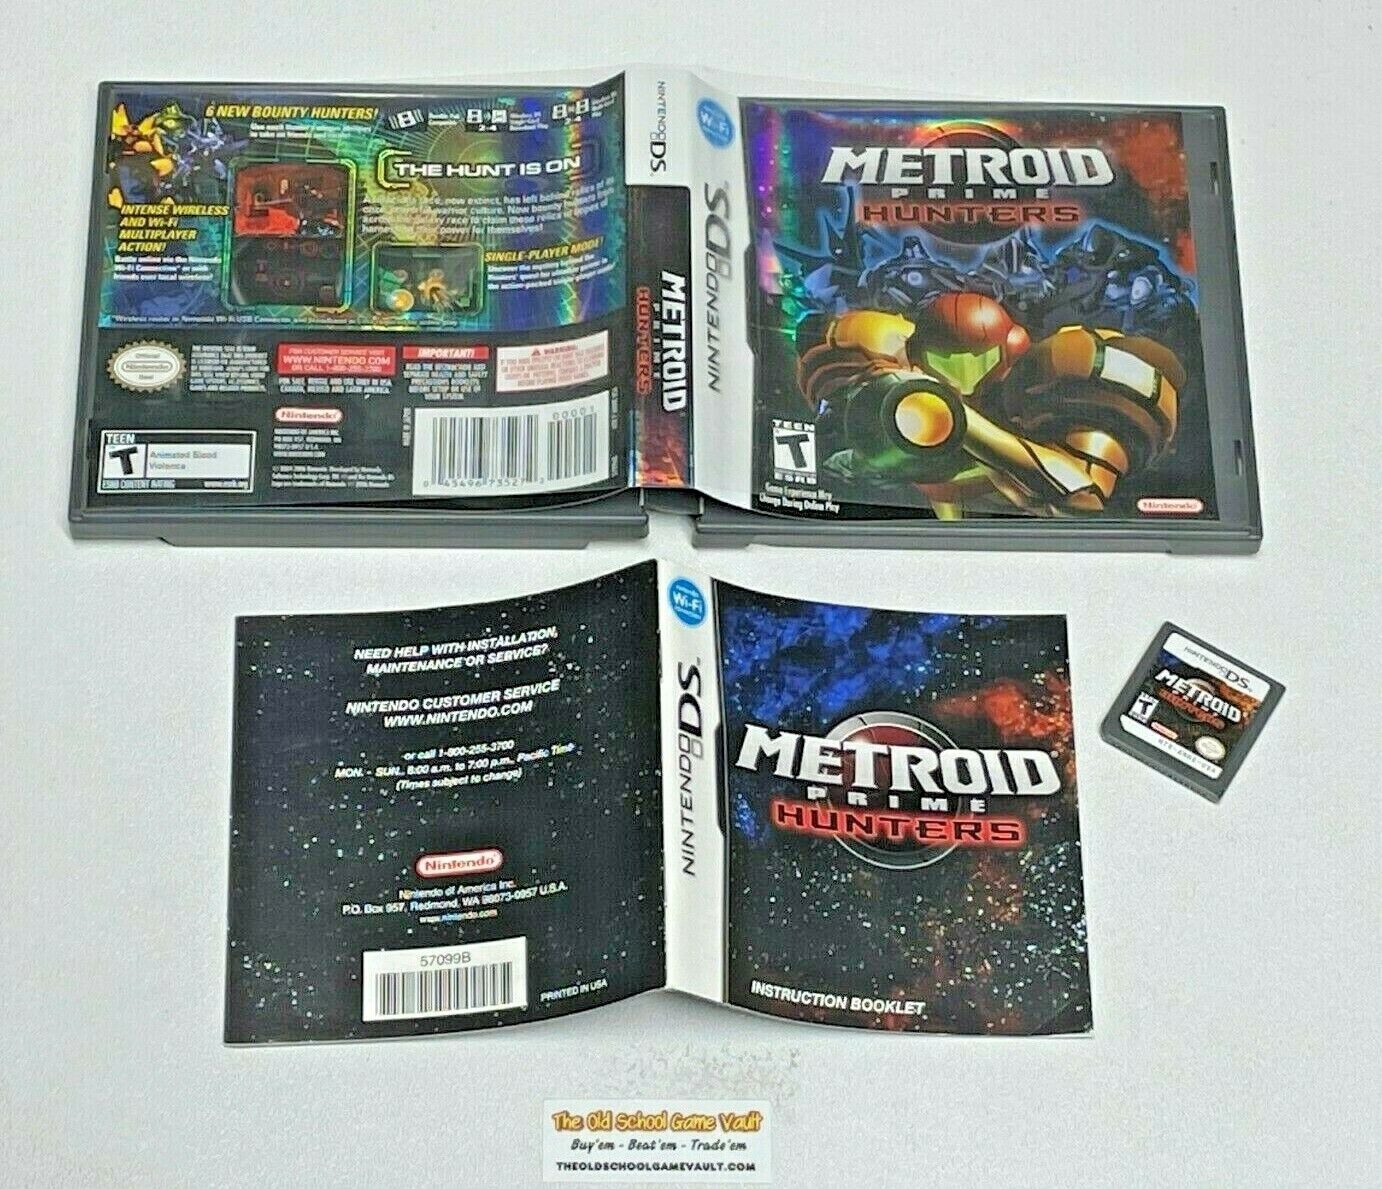 Metroid Prime Hunters - Complete Nintendo DS Game Authentic - $54.90